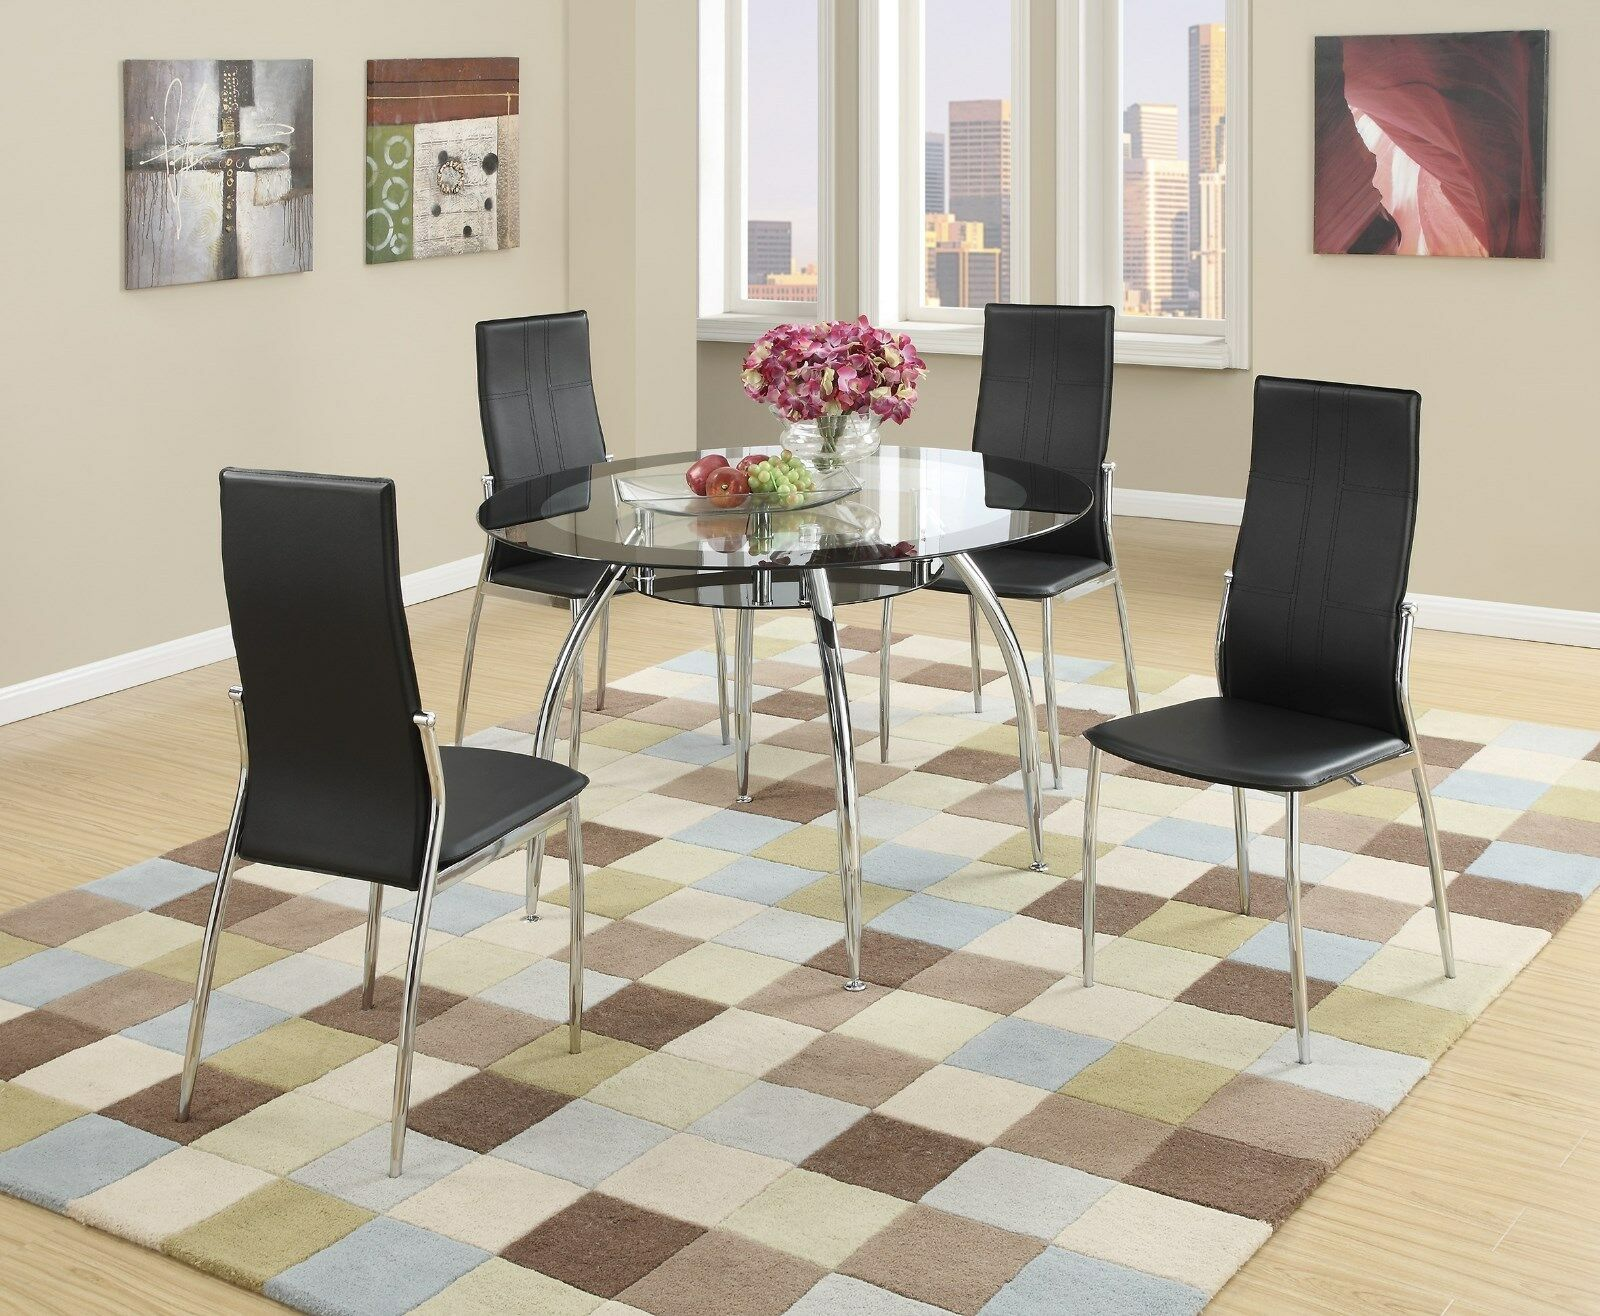 Details About New Tulsa Ii Modern Round Black Chrome Metal Gl Top Dining Table Kitchen Set